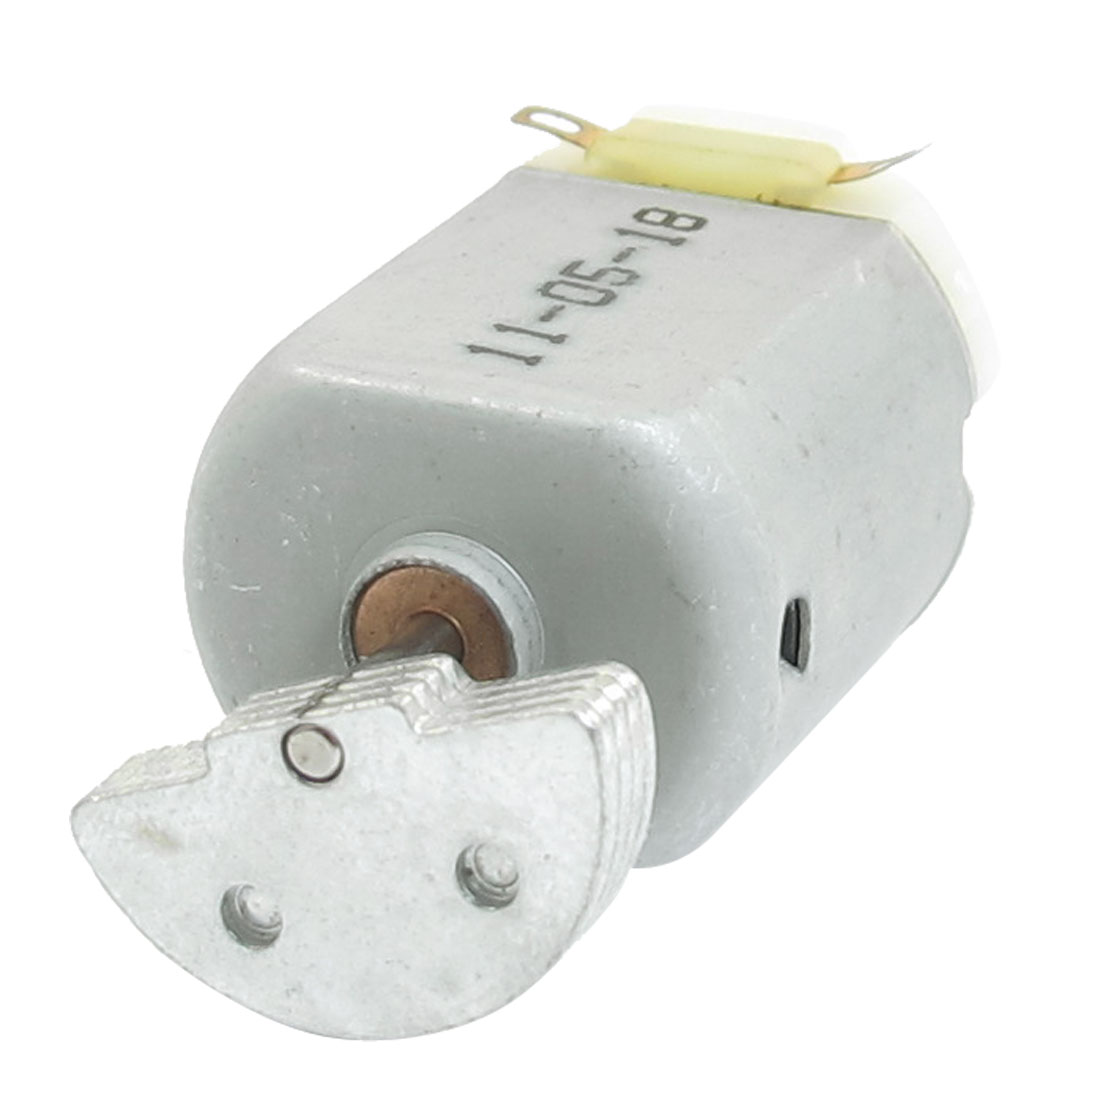 Spare-Part-DC-Vibrating-Vibration-Mini-Motor-5V-3200RPM